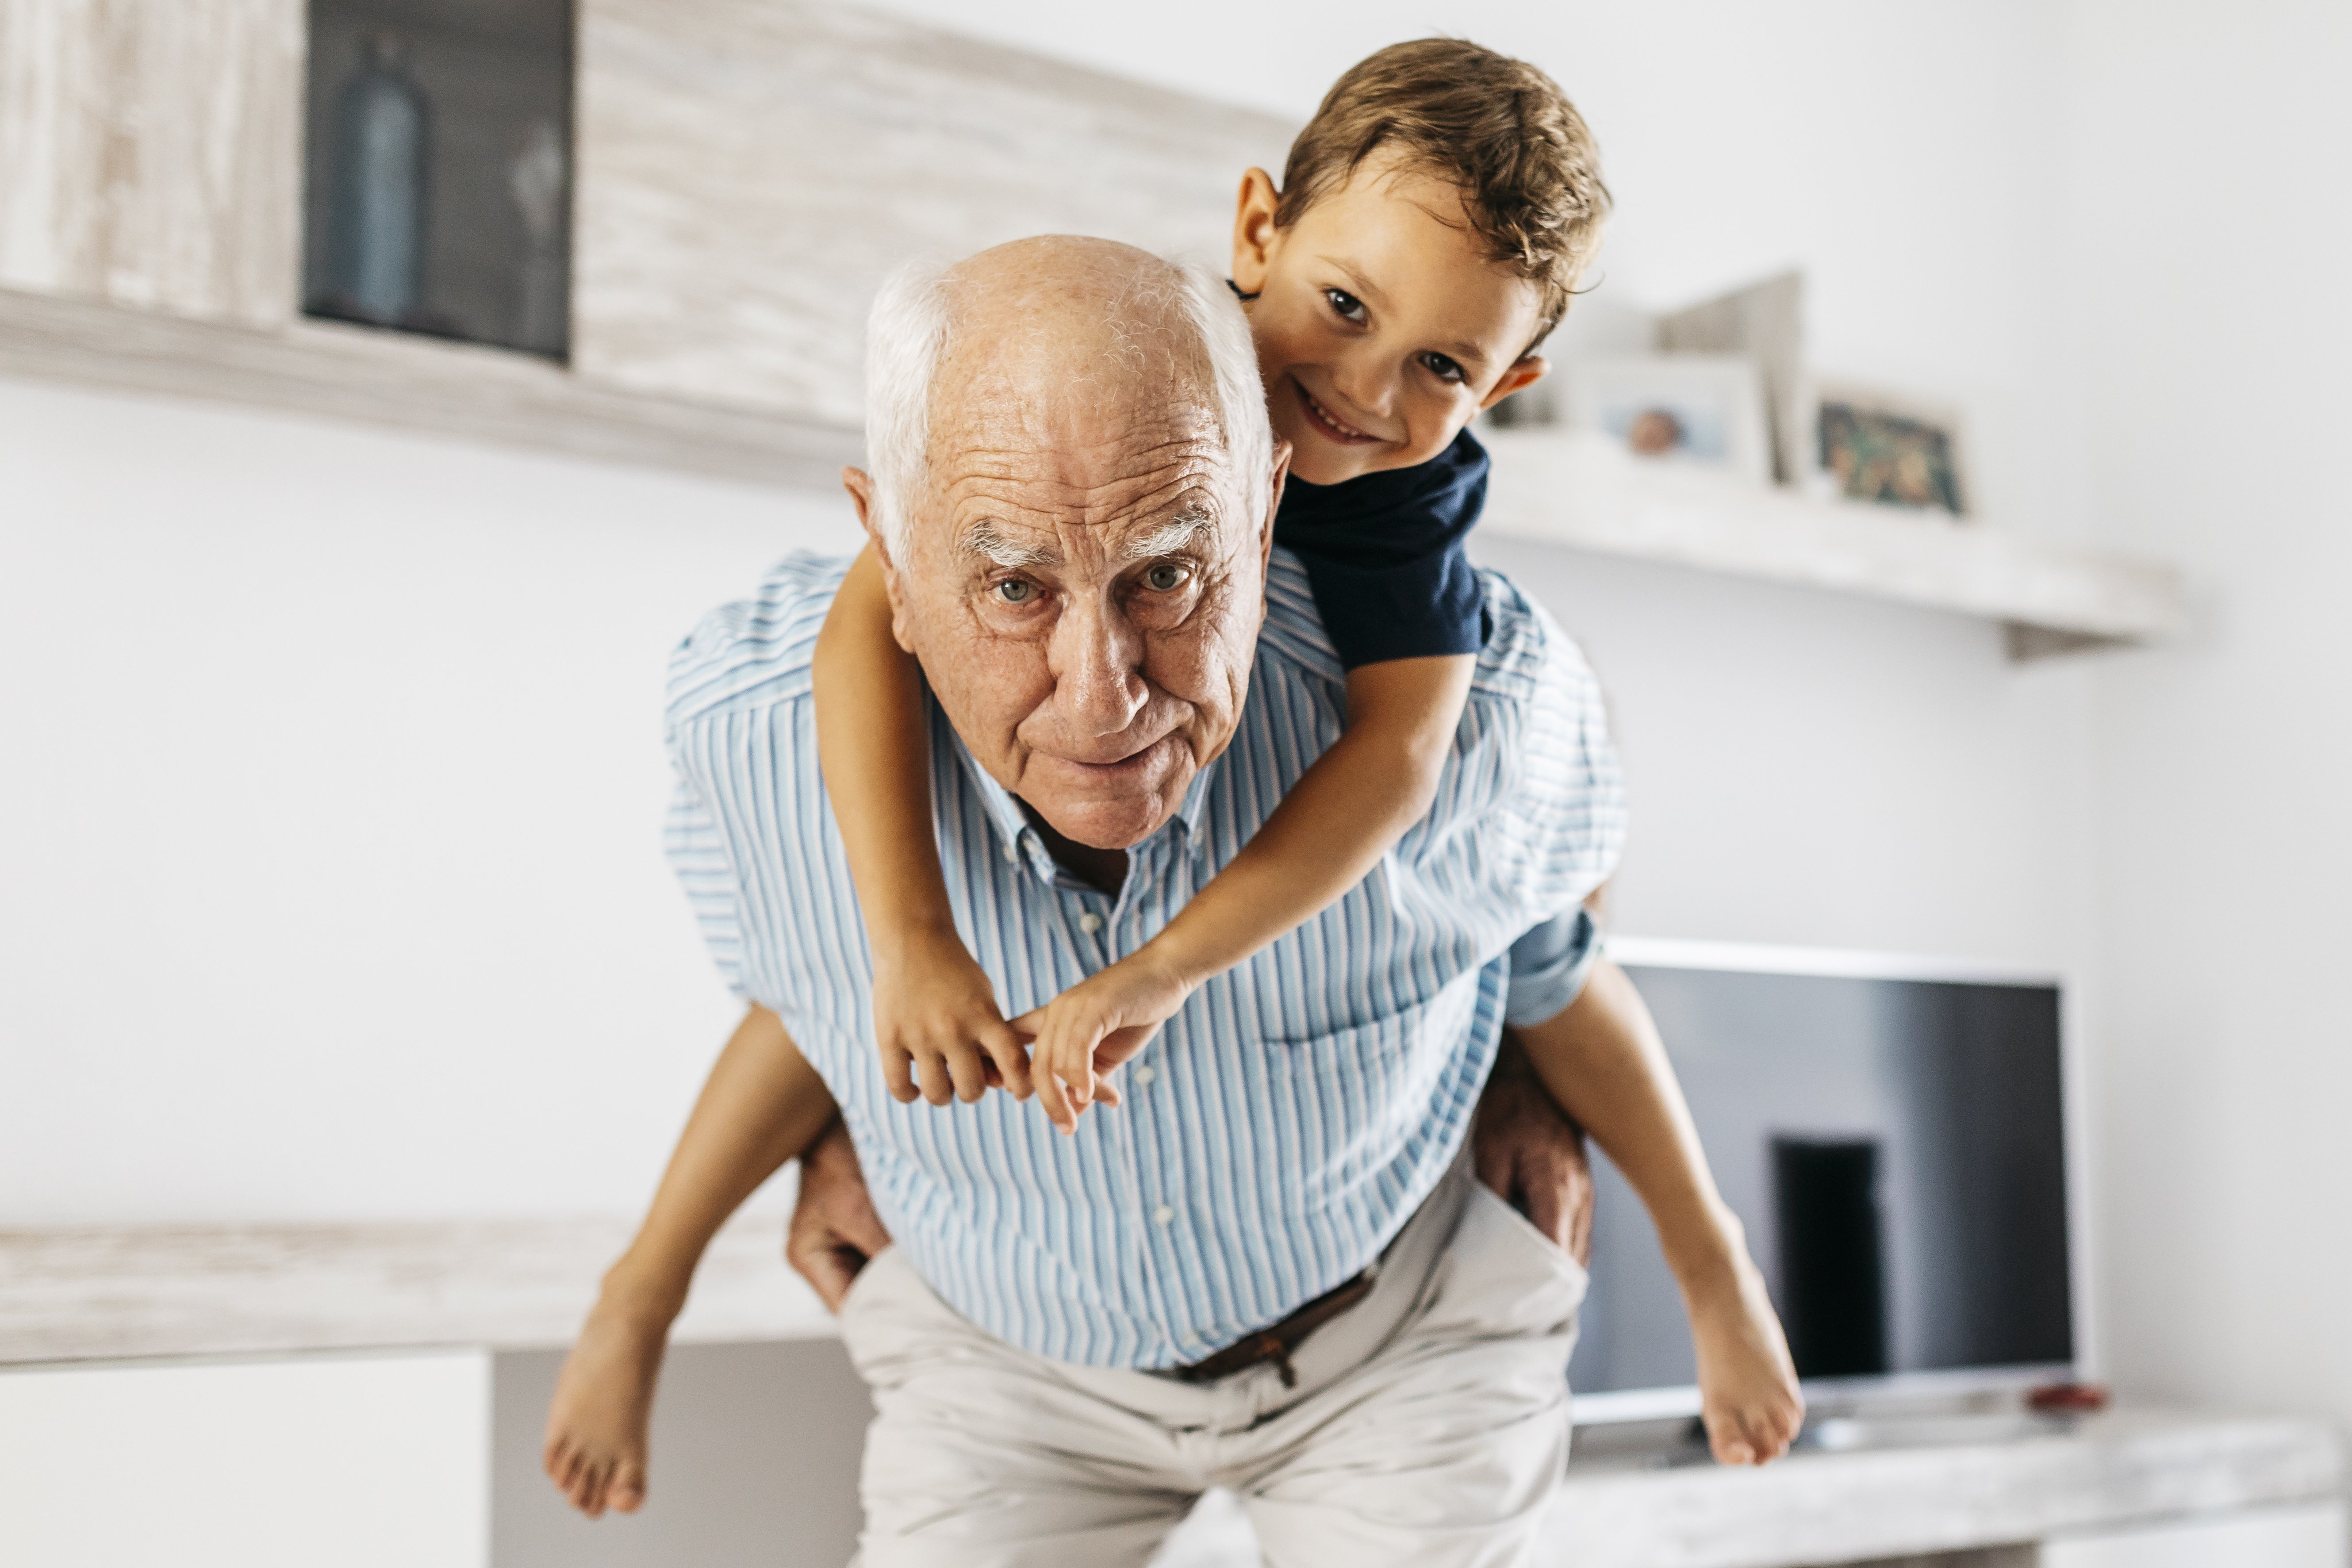 Portrait of grandfather giving his grandson a piggyback ride in the living room | Photo: Getty Images